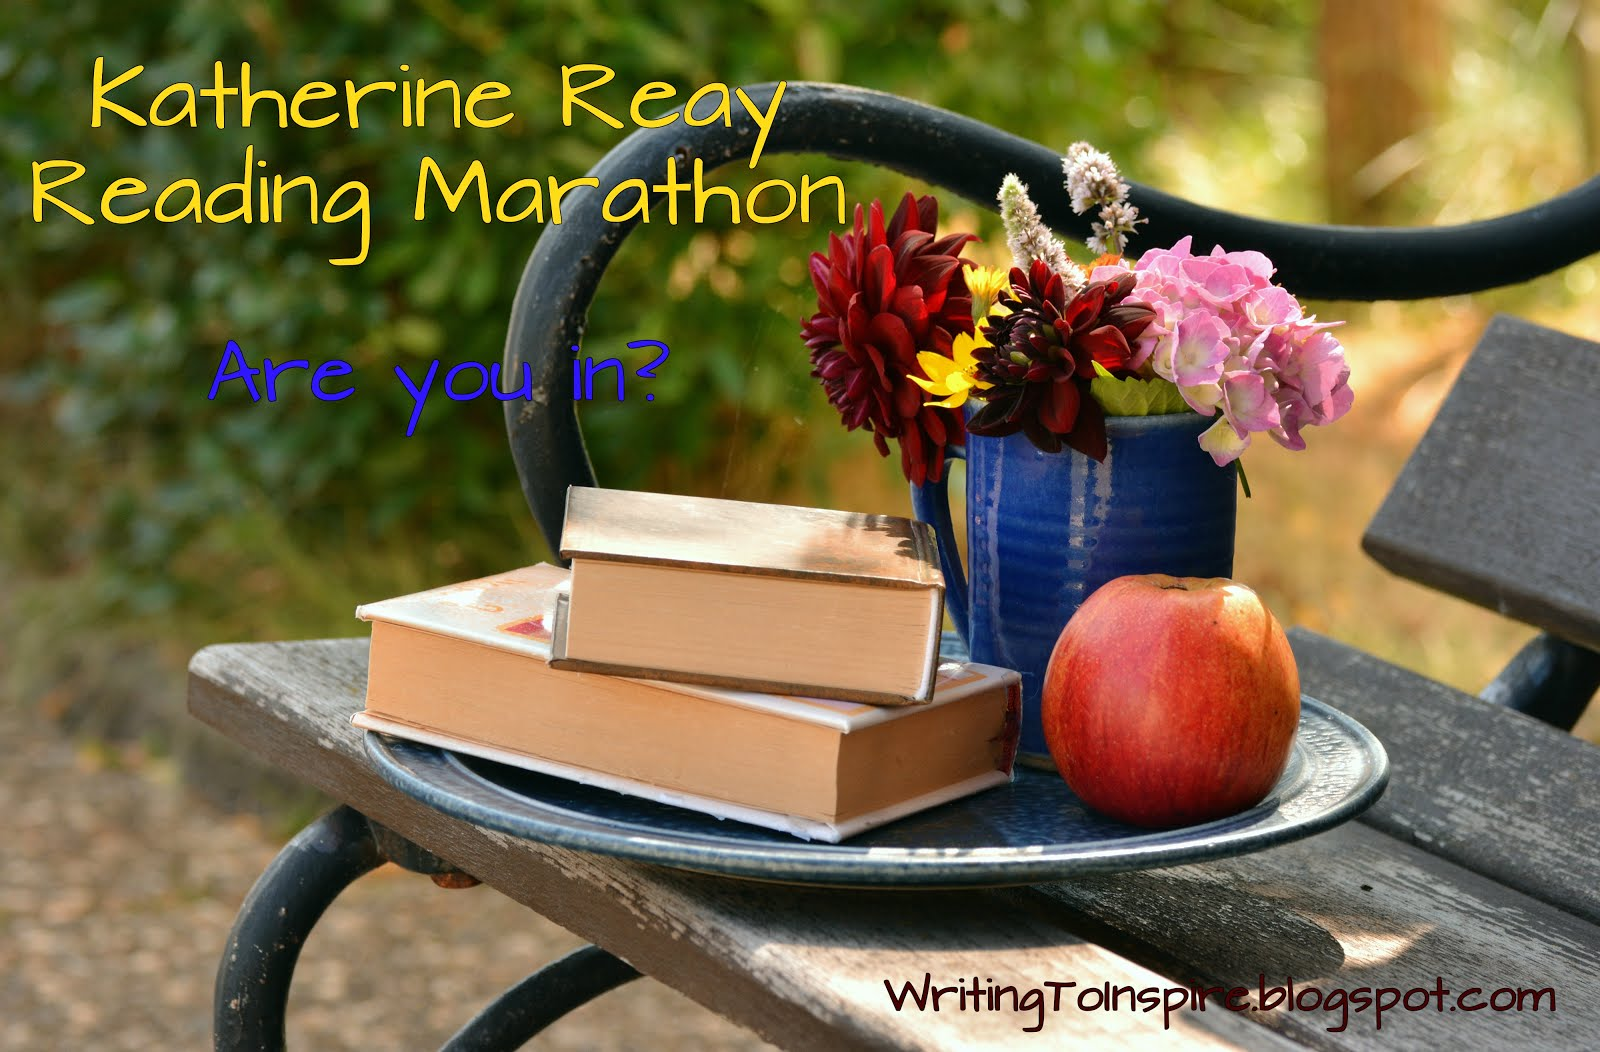 Katherine Reay Reading Marathon